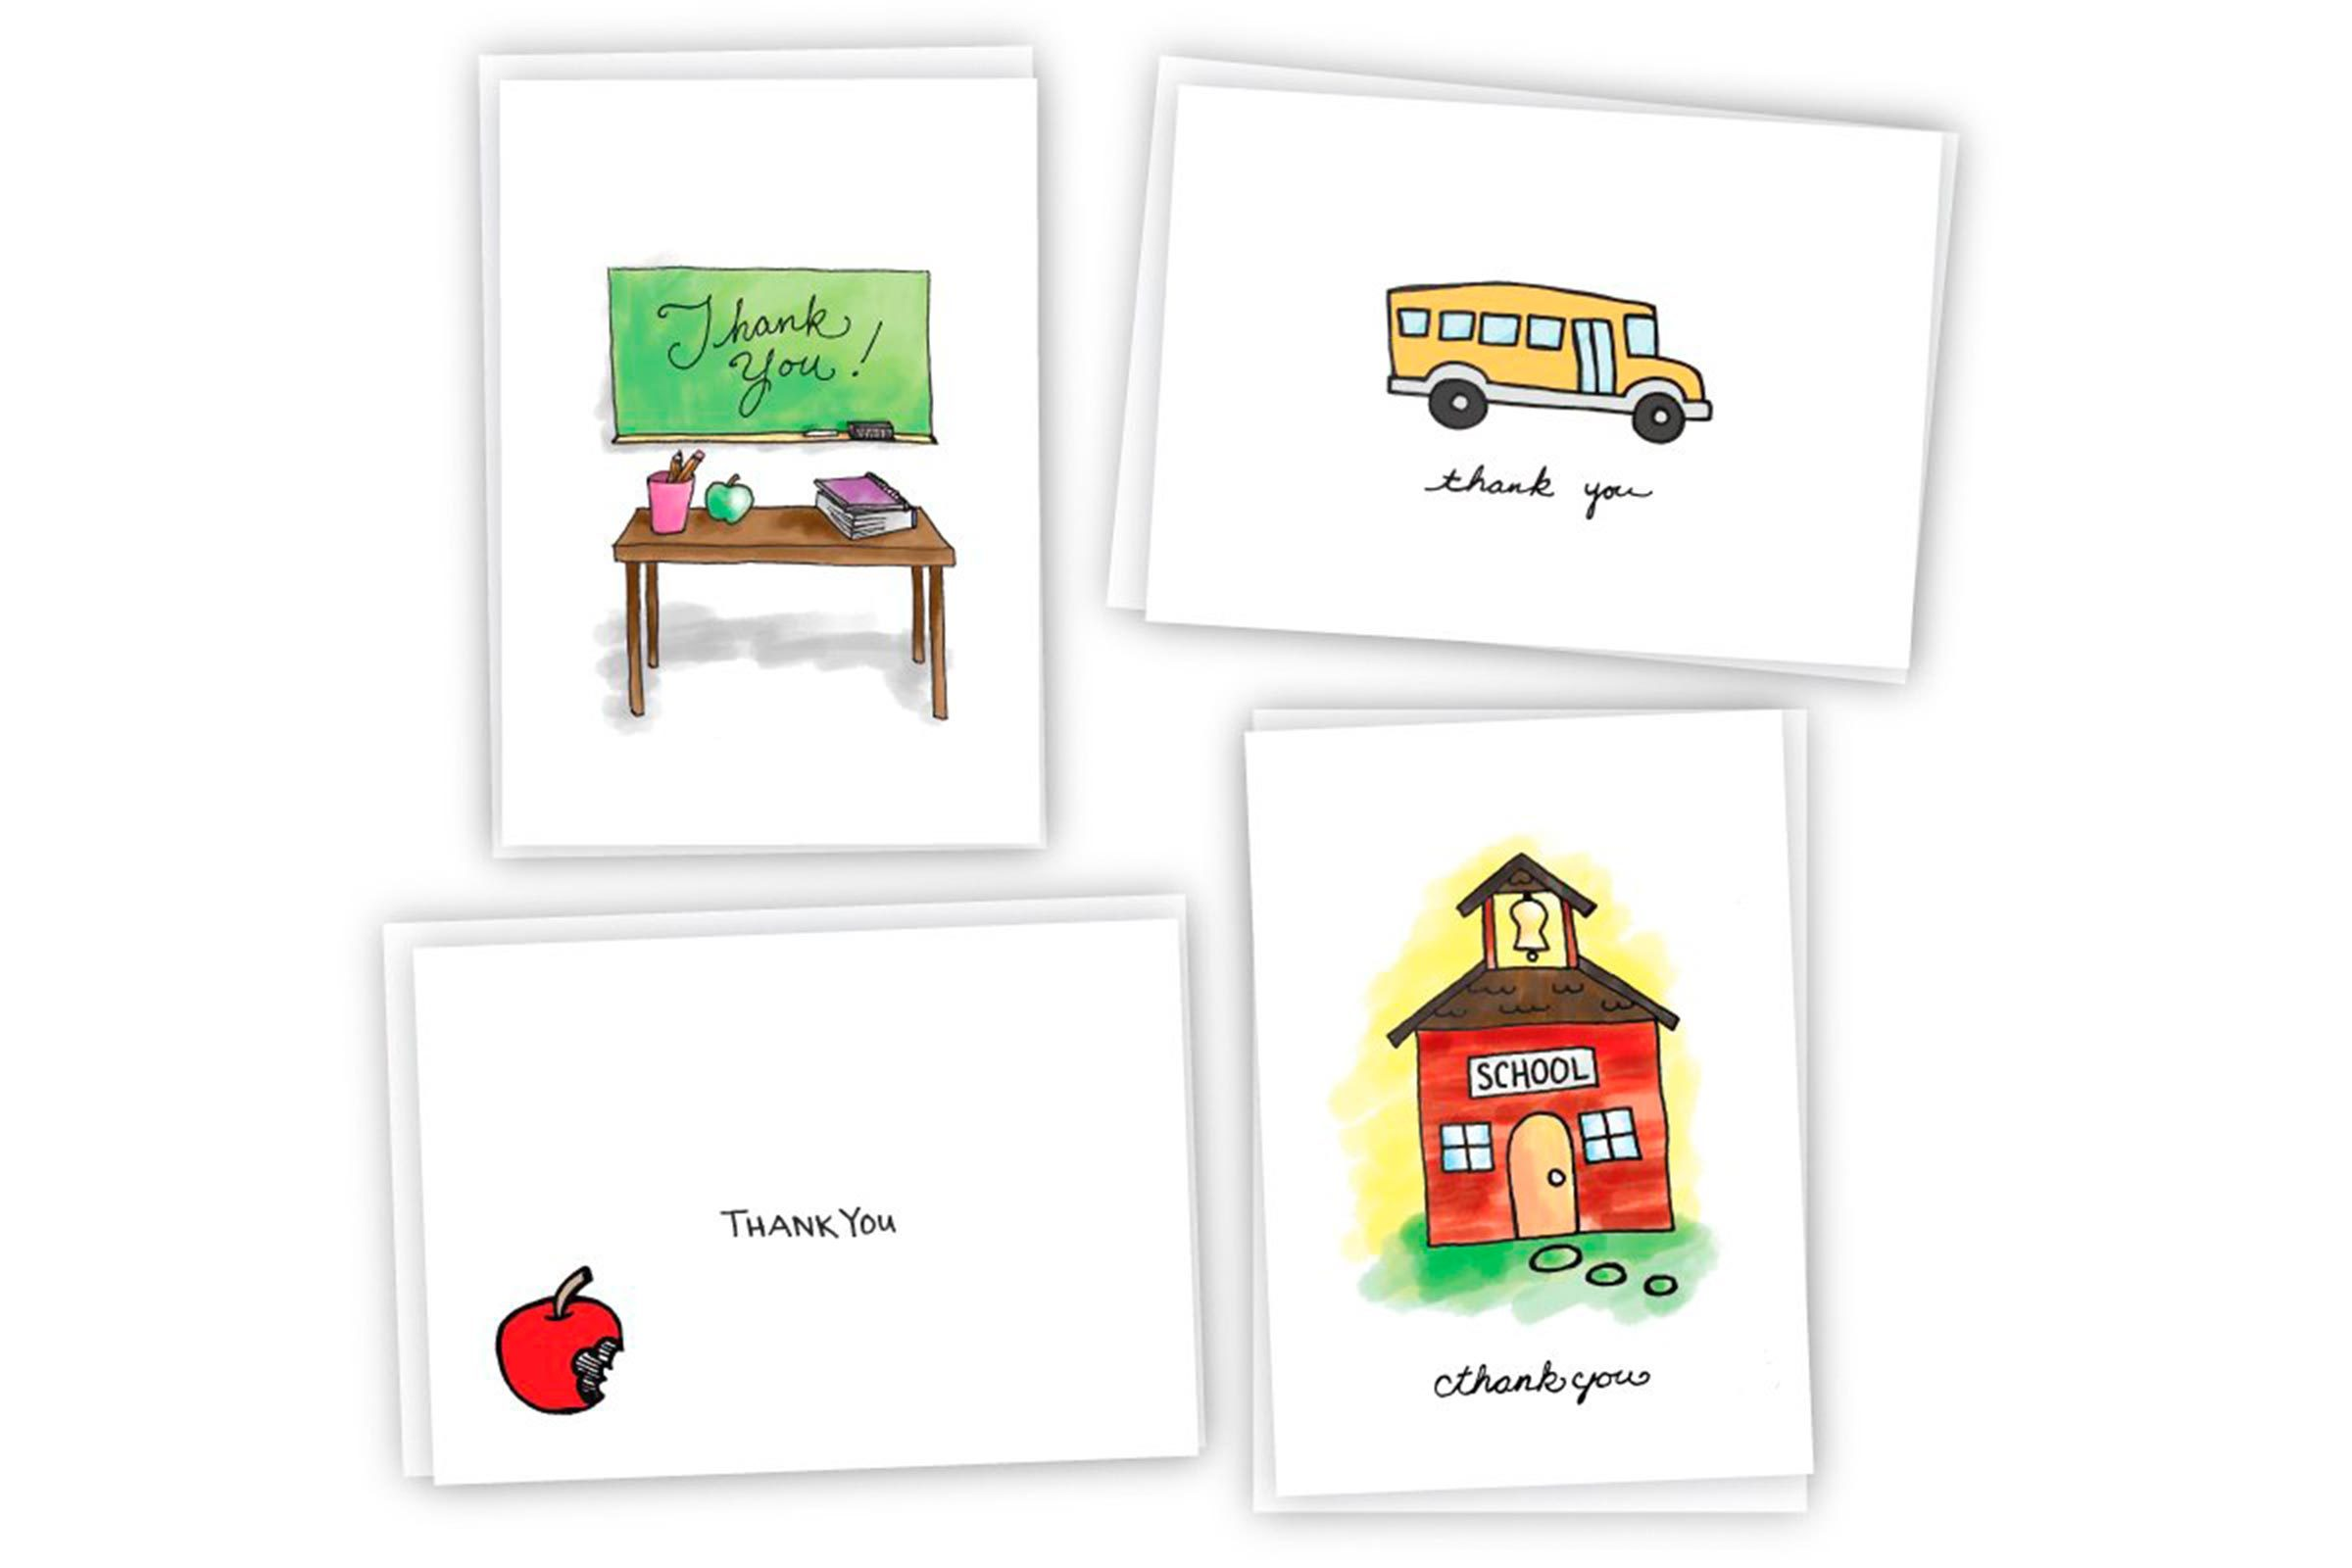 School thank you cards